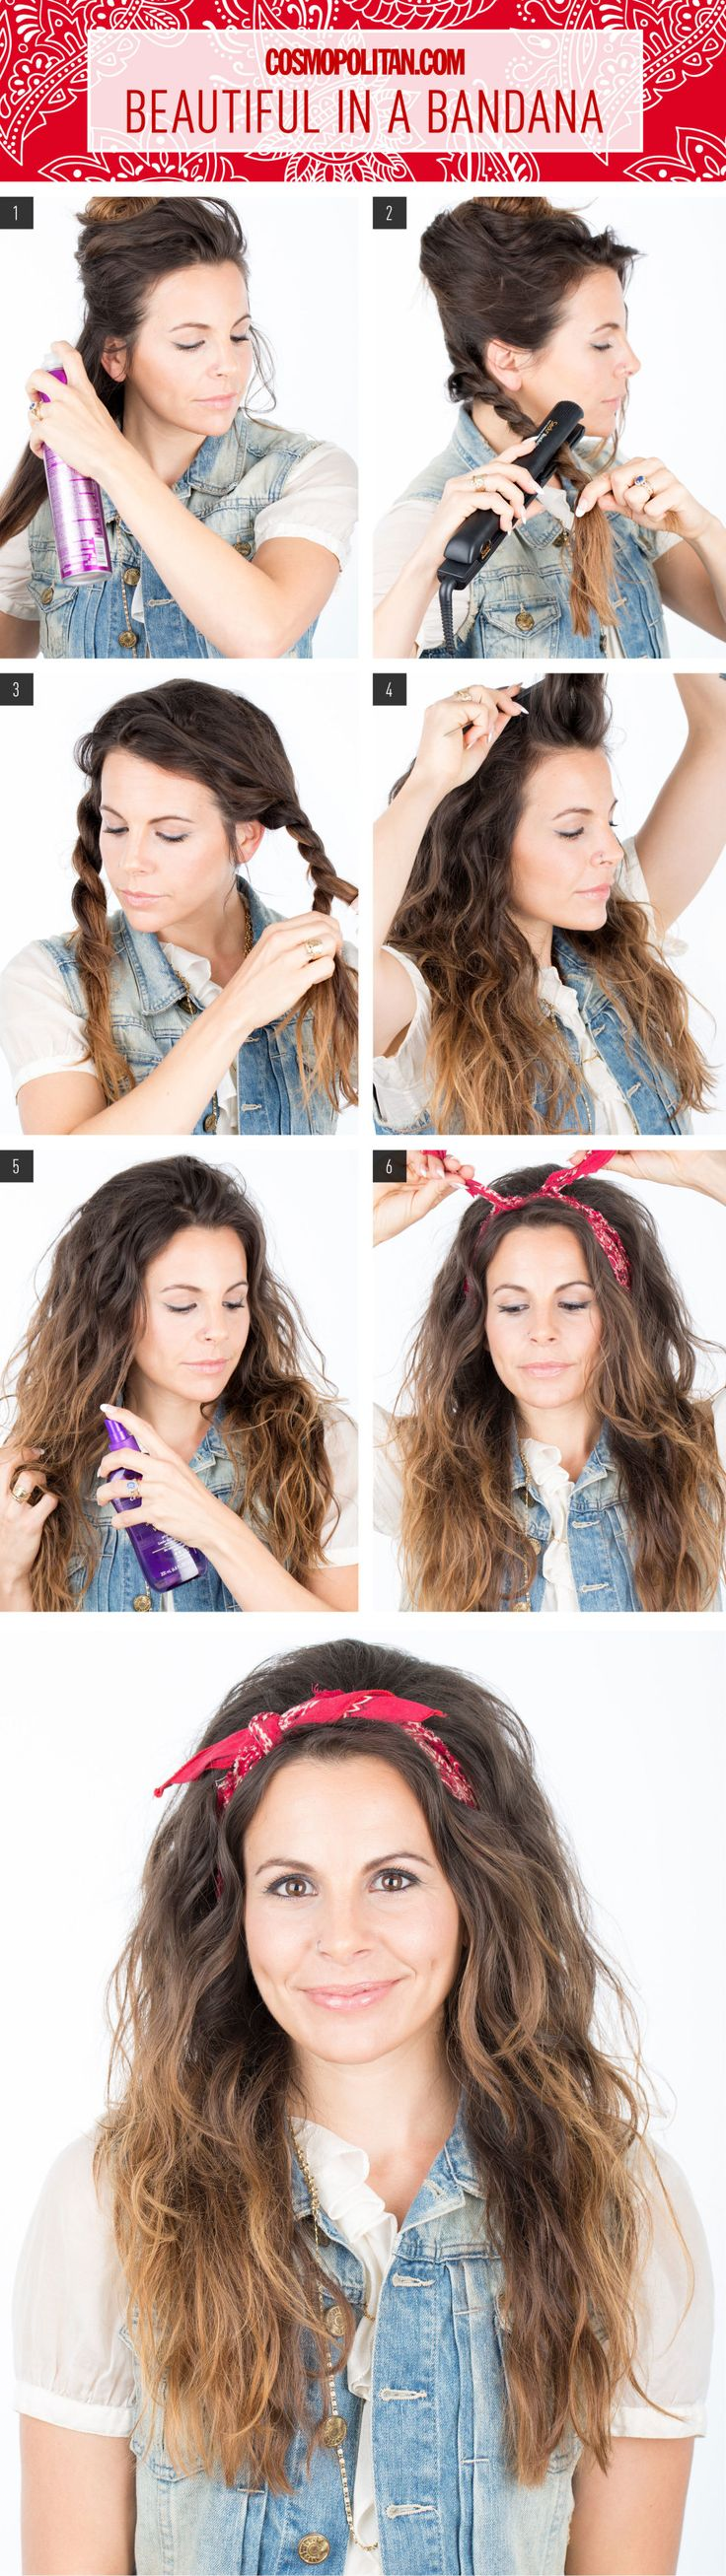 Hair How-To: Look Beautiful in a Bandana. YOU CAN SKIP A FEW STEPS IF YOU ALREADY HAVE WAVY HAIR!!! Yay!